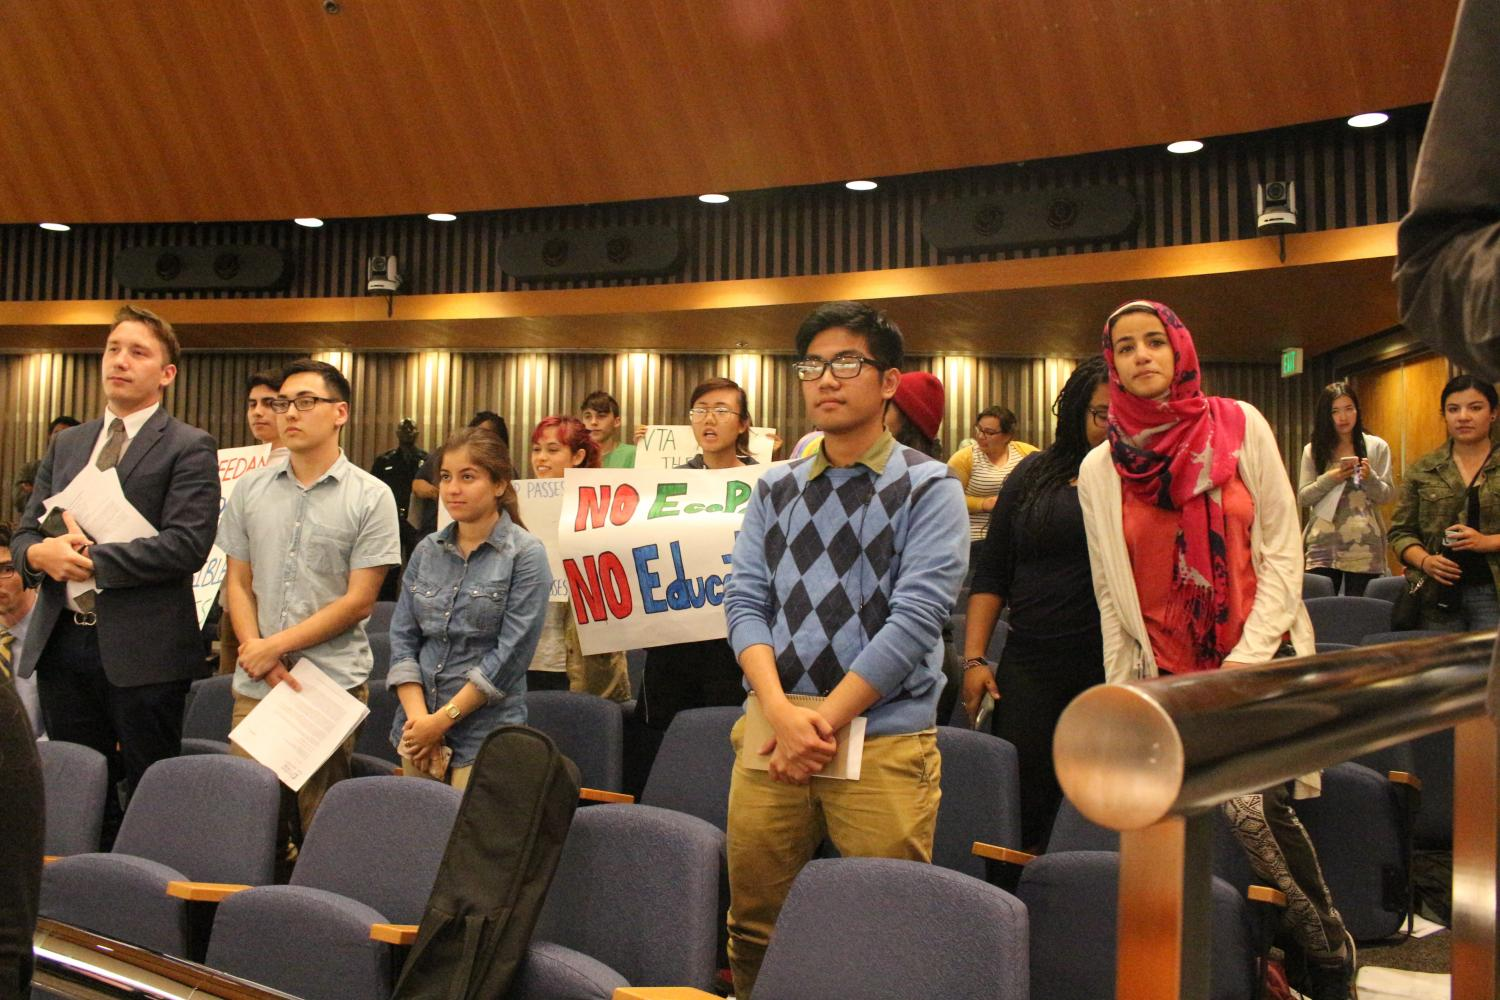 De+Anza+students+fill+up+the+VTA+board+meeting+room+with+posters+and+prepared+speeches+to+lobby+against+raising+the+Eco-Pass+fee+to+%2440.